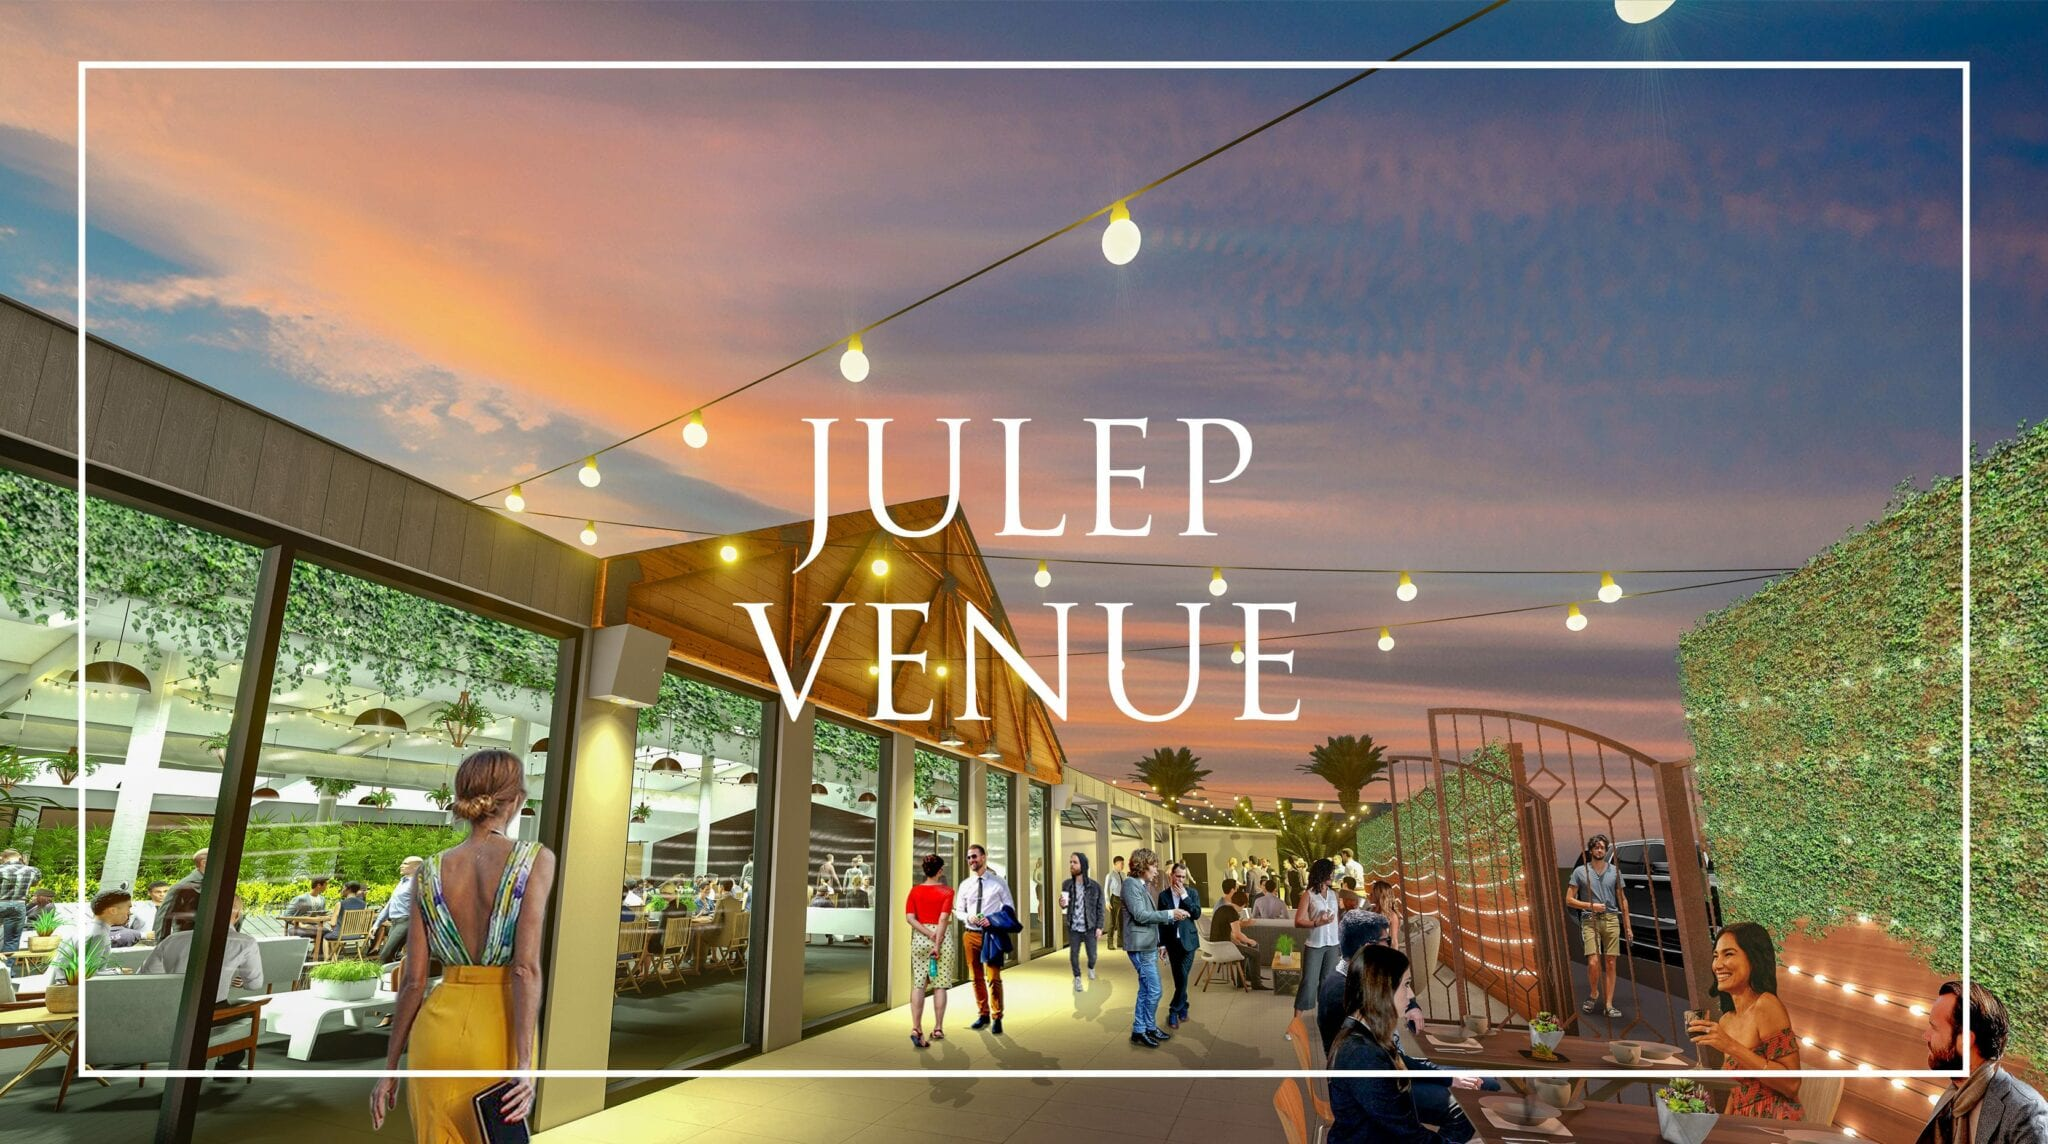 Julep outdoor event venue with patio | Snake Oil Cocktail Co.